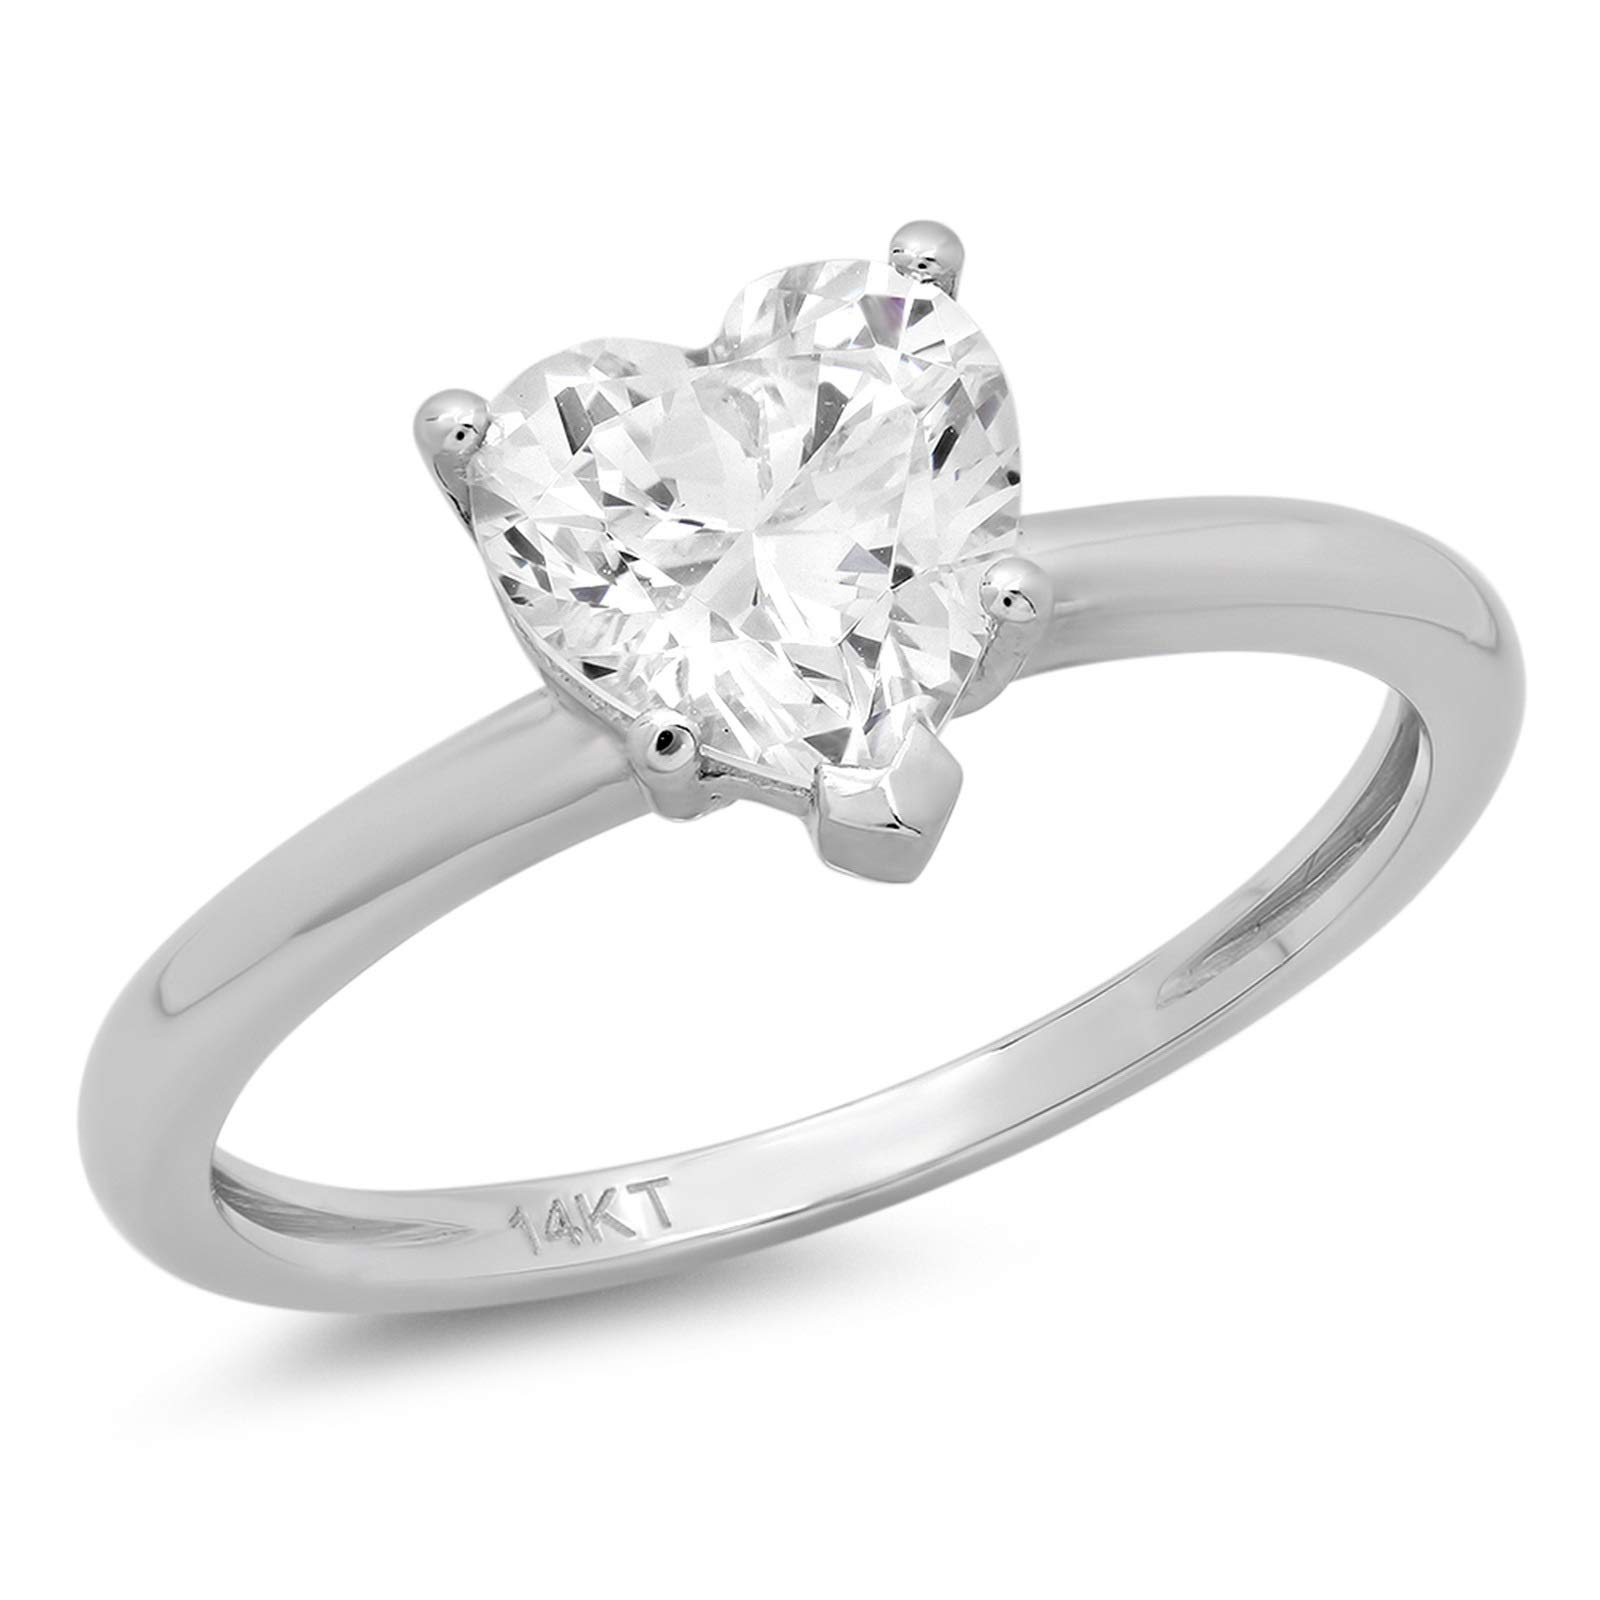 1.0 ct Brilliant Heart Cut Solitaire Highest Quality Moissanite Ideal VVS1 D 5-Prong Engagement Wedding Bridal Promise Anniversary Ring in Solid Real 14k White Gold for Women